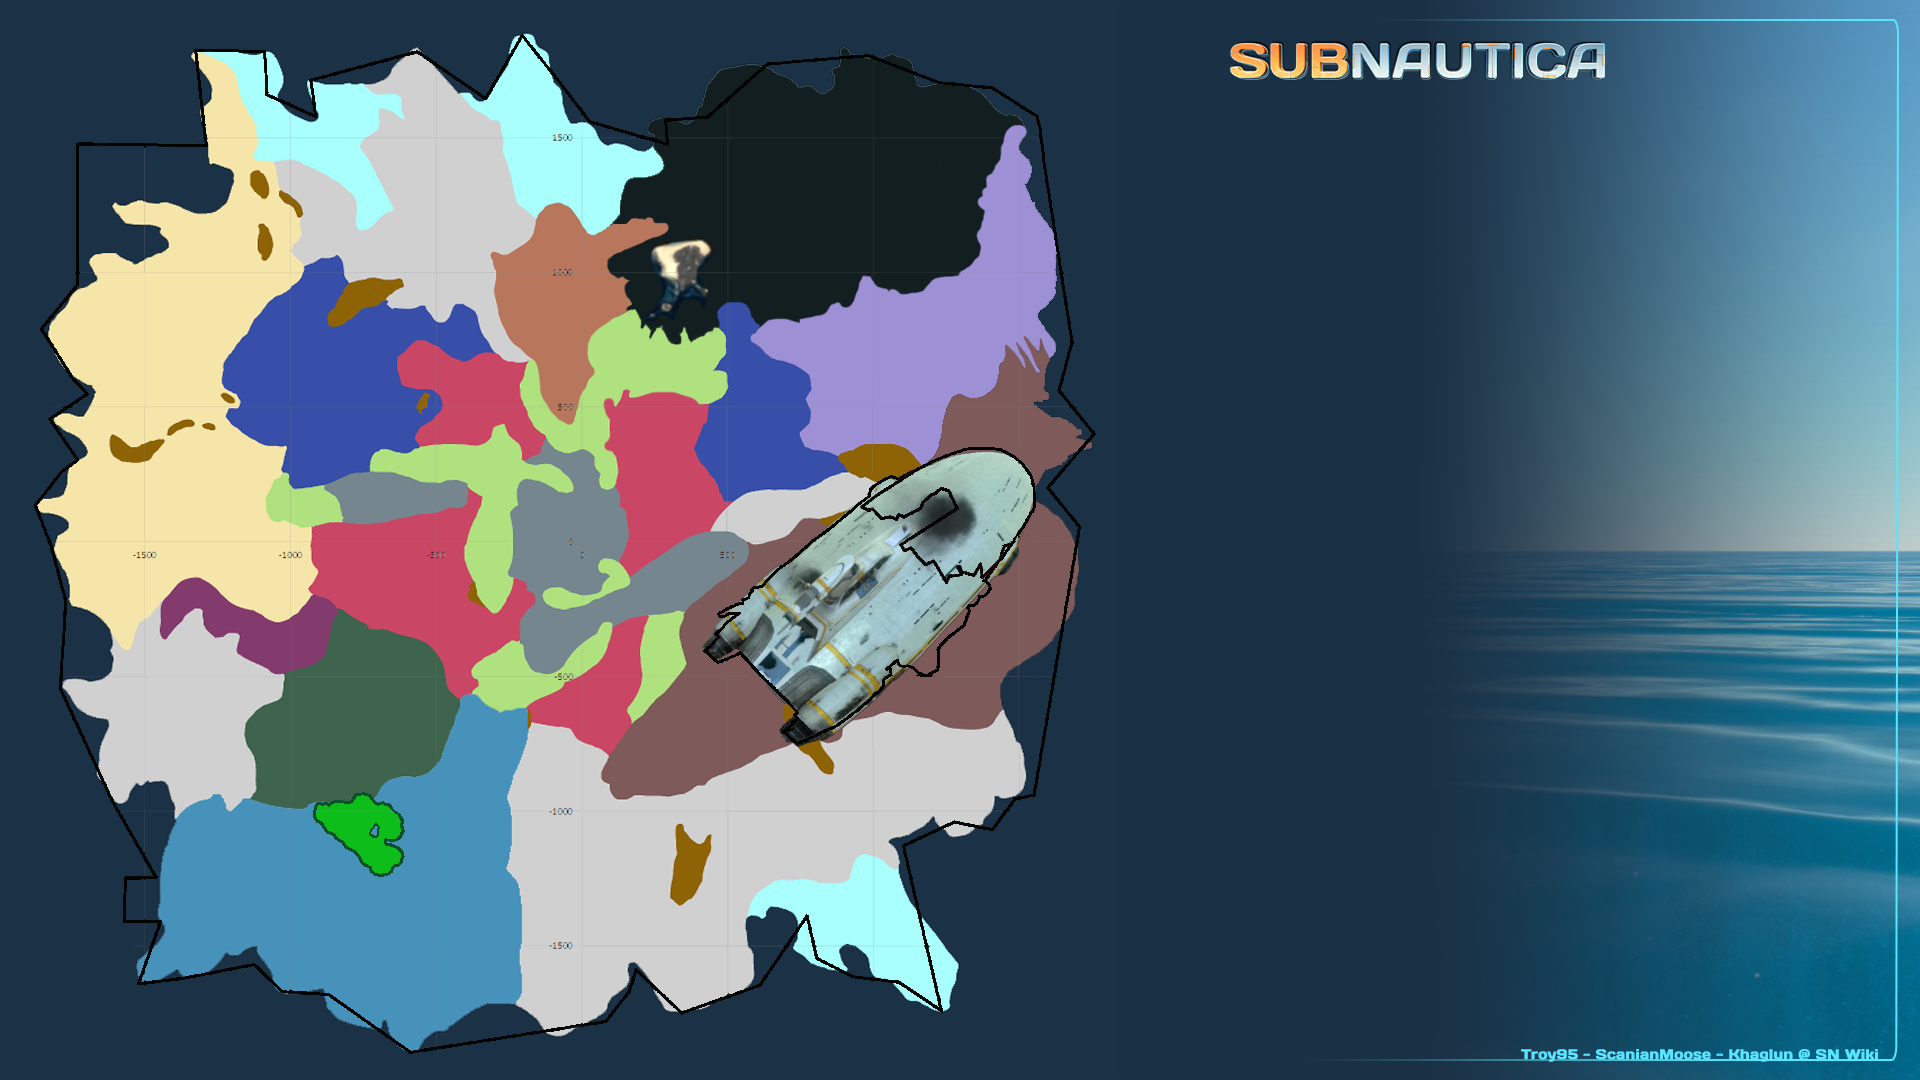 Image biome map 3g subnautica wiki fandom powered by wikia biome map 3g gumiabroncs Gallery